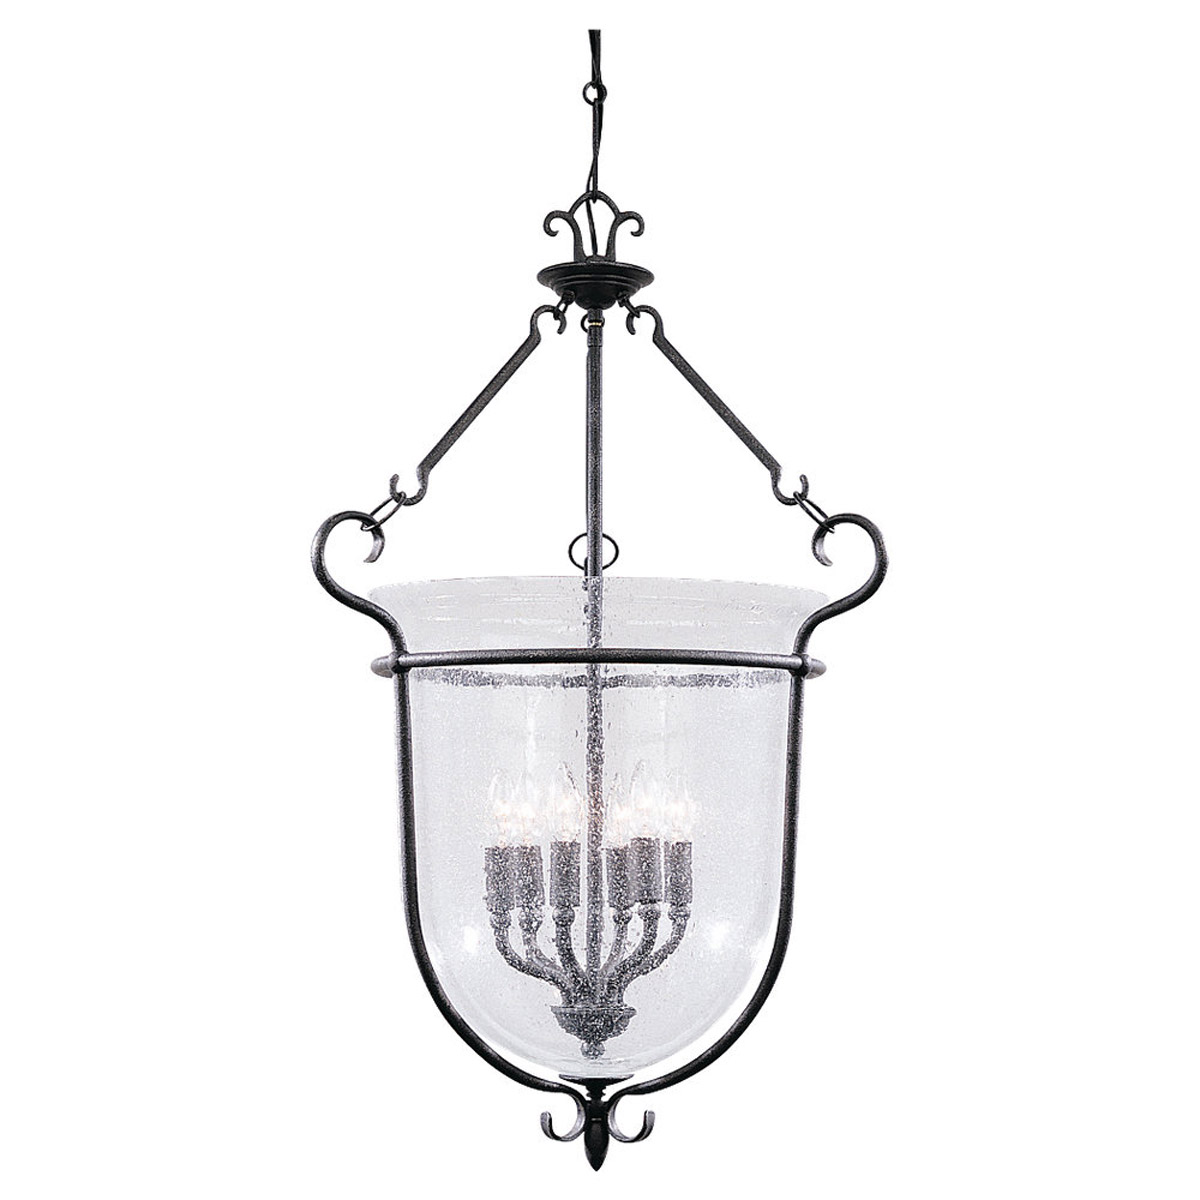 Sea Gull Lighting Manor House 6 Light Foyer Pendant in Weathered Iron 5104-07